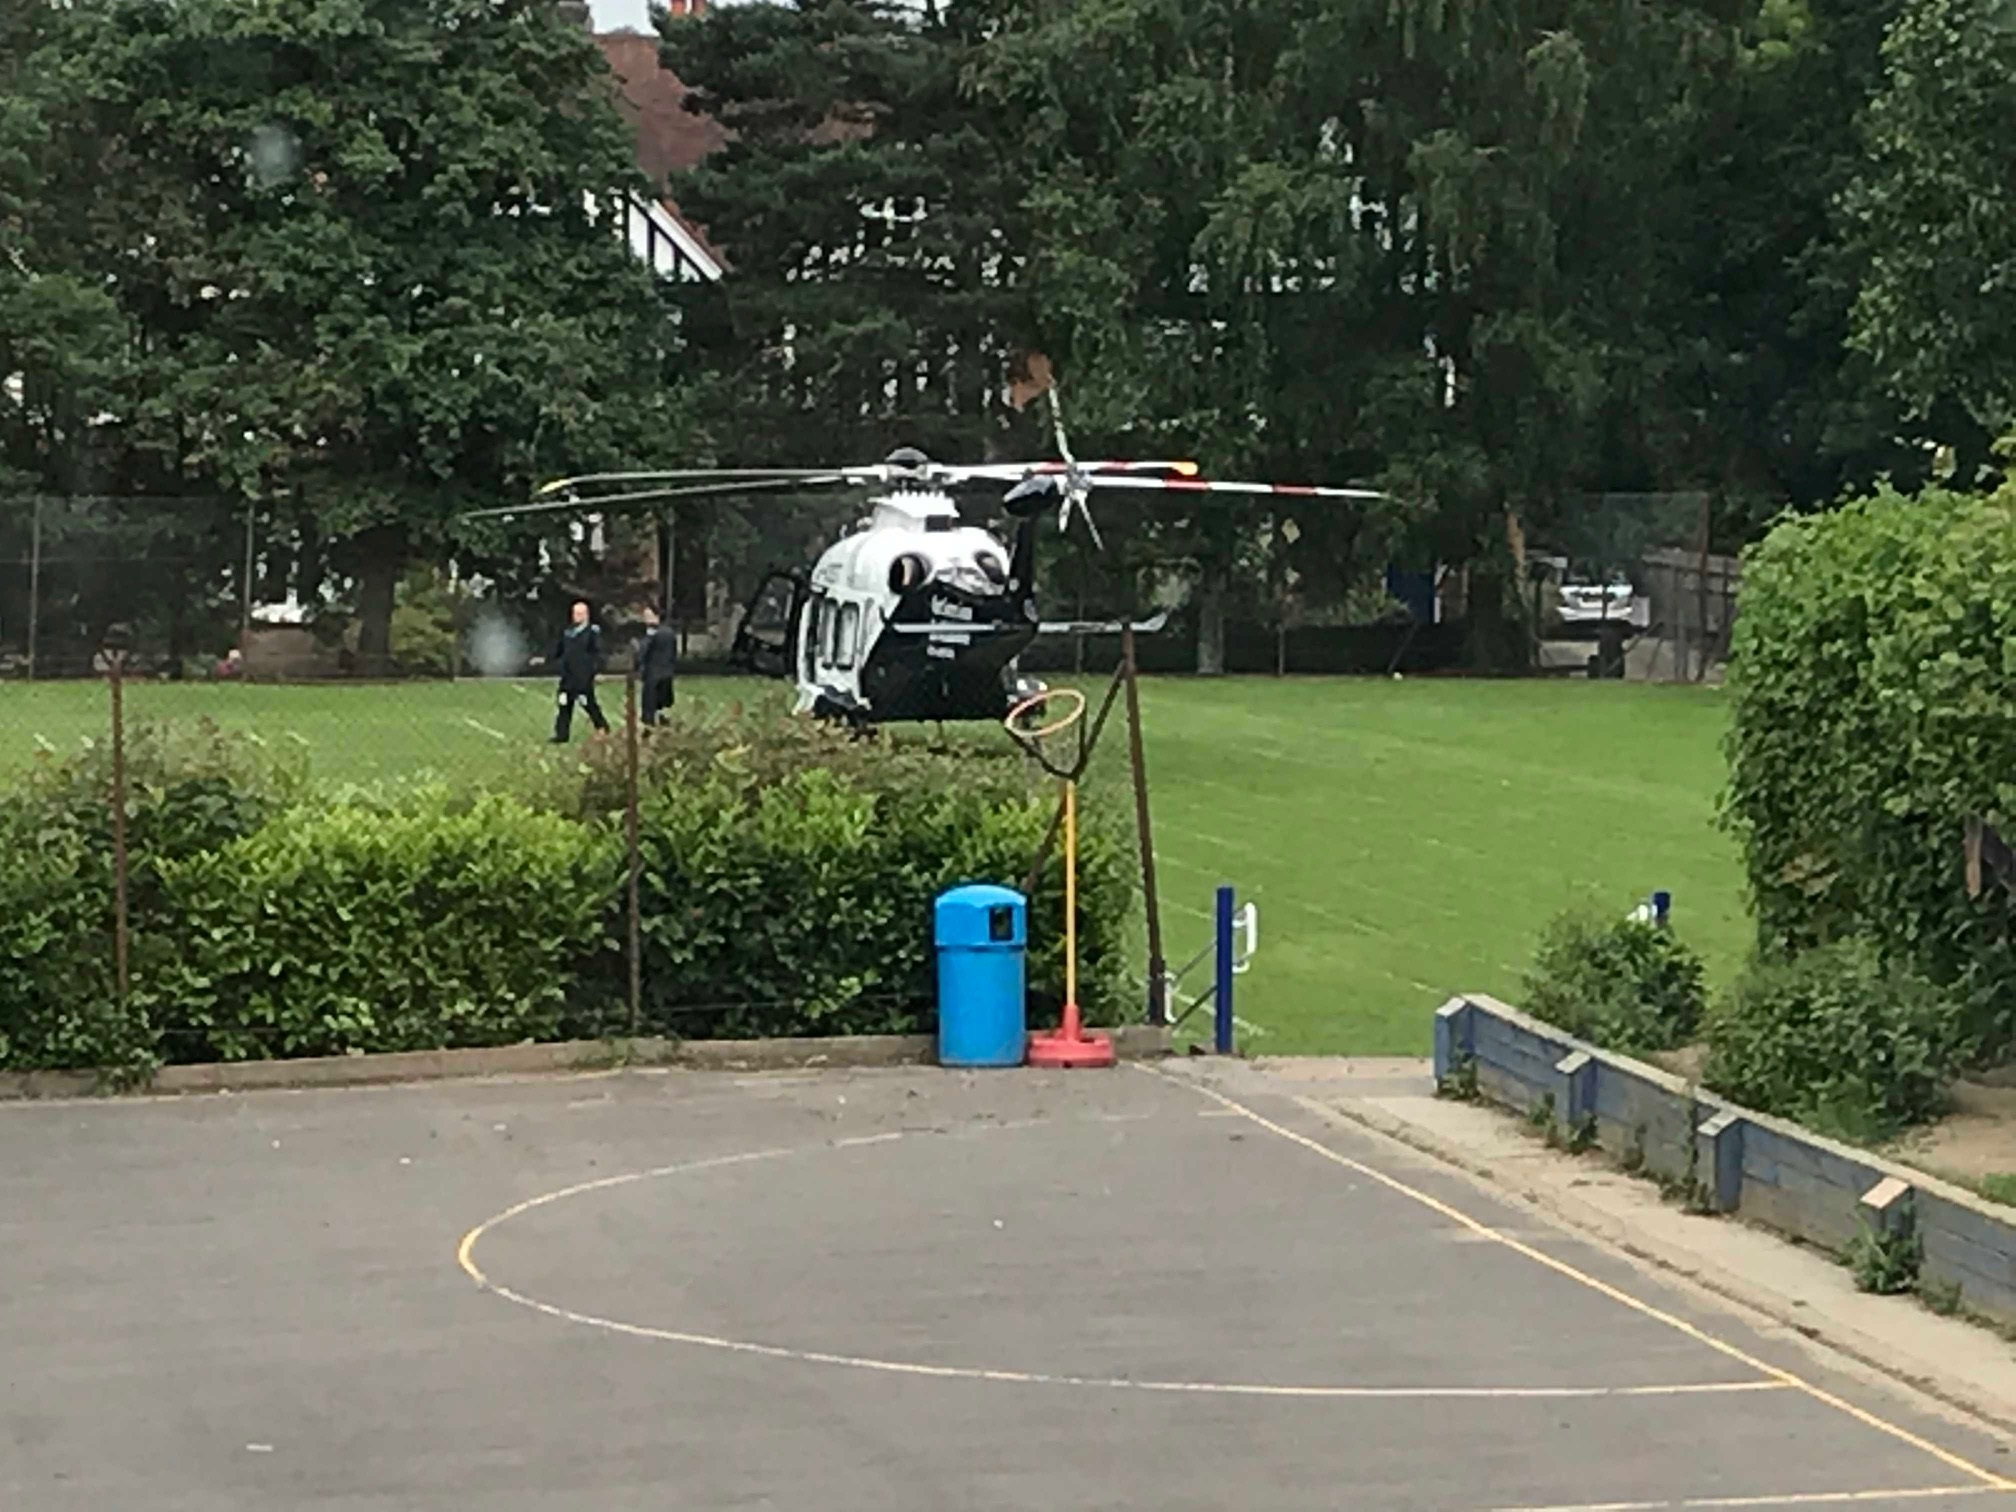 Ecsimgtunbridge wells air ambulance 1 2169679929834495329